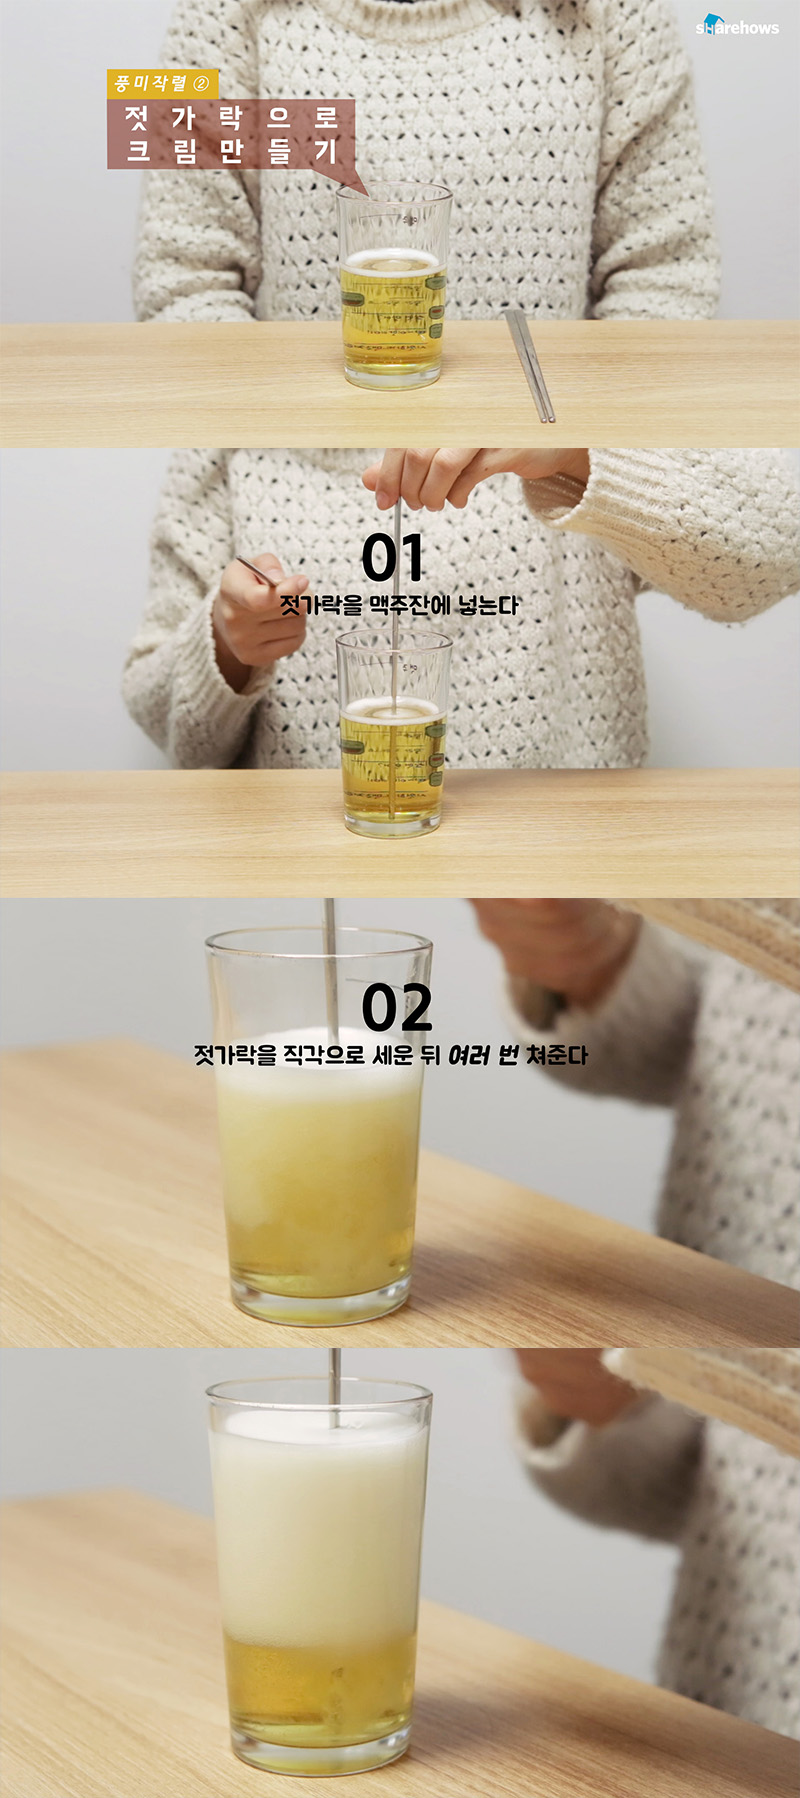 how-to-make-cream-beer 04